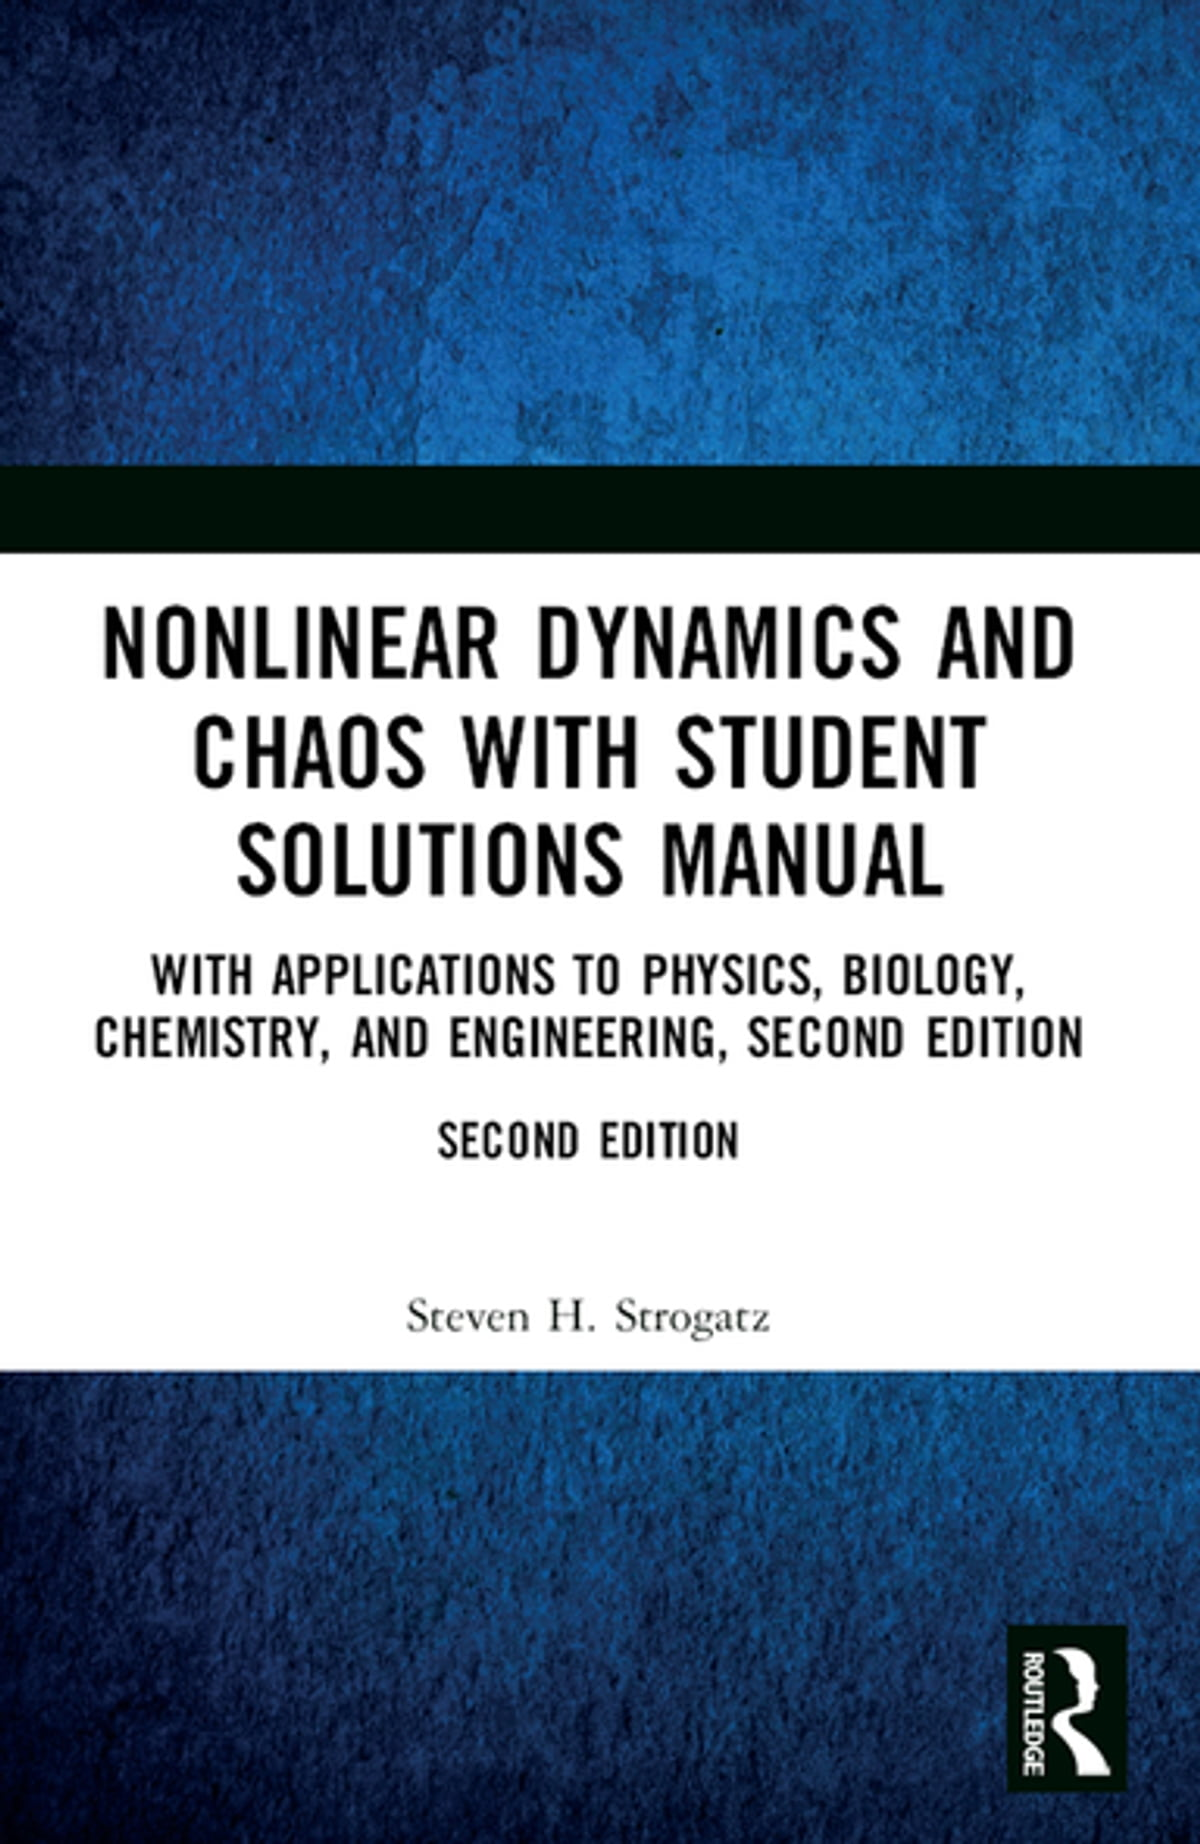 Nonlinear Dynamics and Chaos with Student Solutions Manual eBook by Steven  H. Strogatz - 9780429680151 | Rakuten Kobo